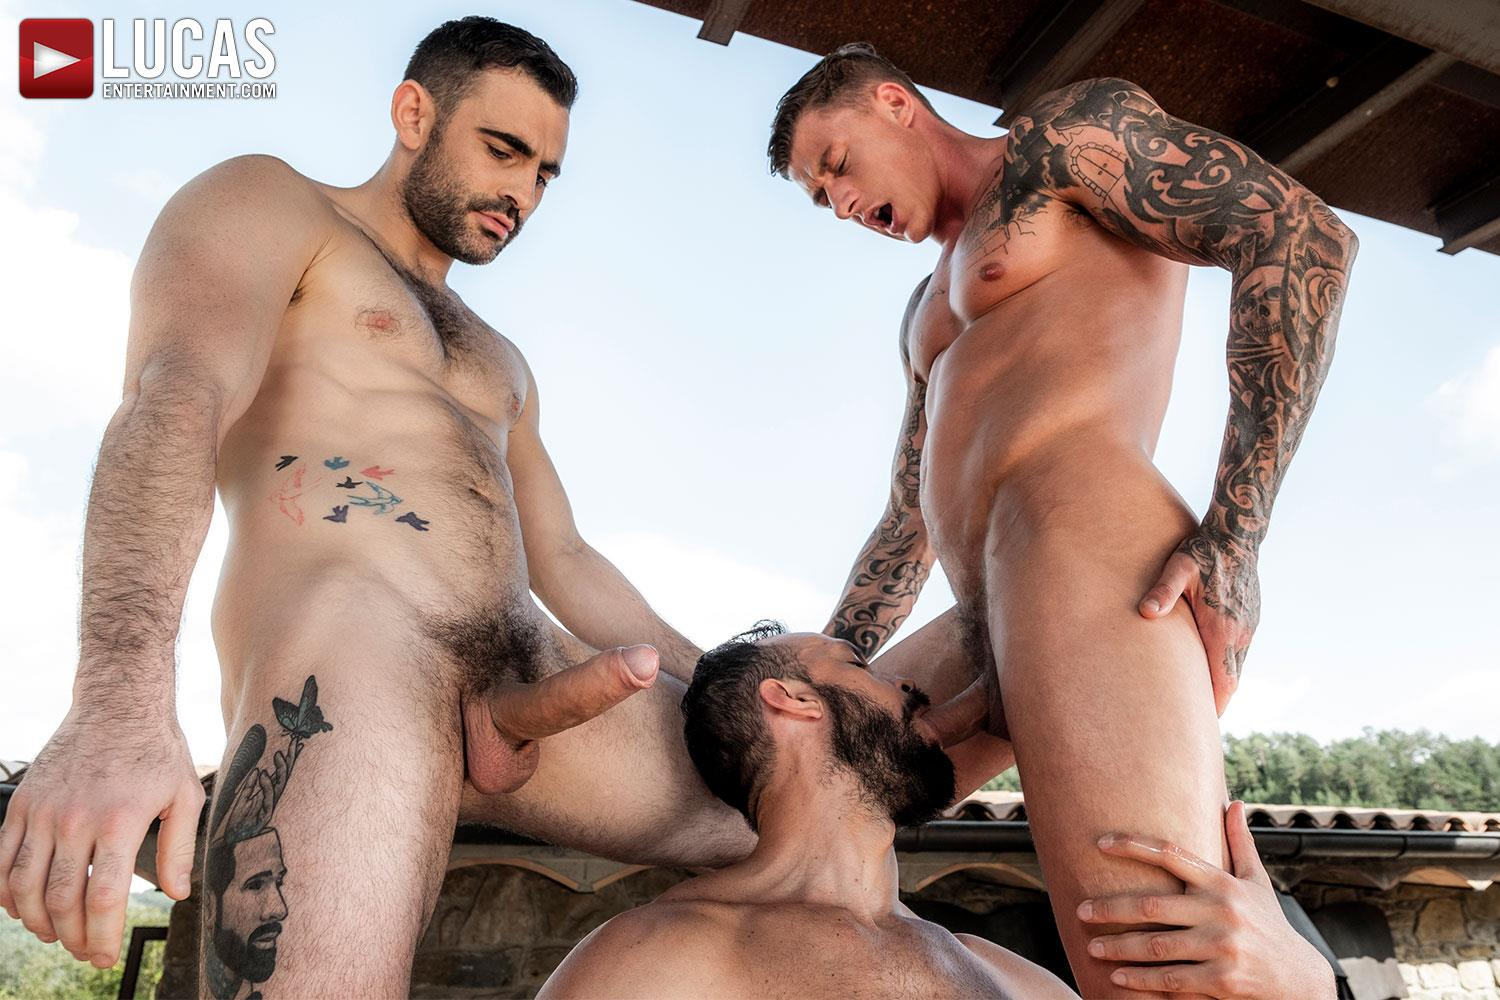 Lucas-Andy-Onassis-and-Geordie-Jackson-and-Max-Arion-Huge-Uncut-Cocks-Bareback-06 Bareback Outdoor Threesome Featuring Three Huge Uncut Cocks